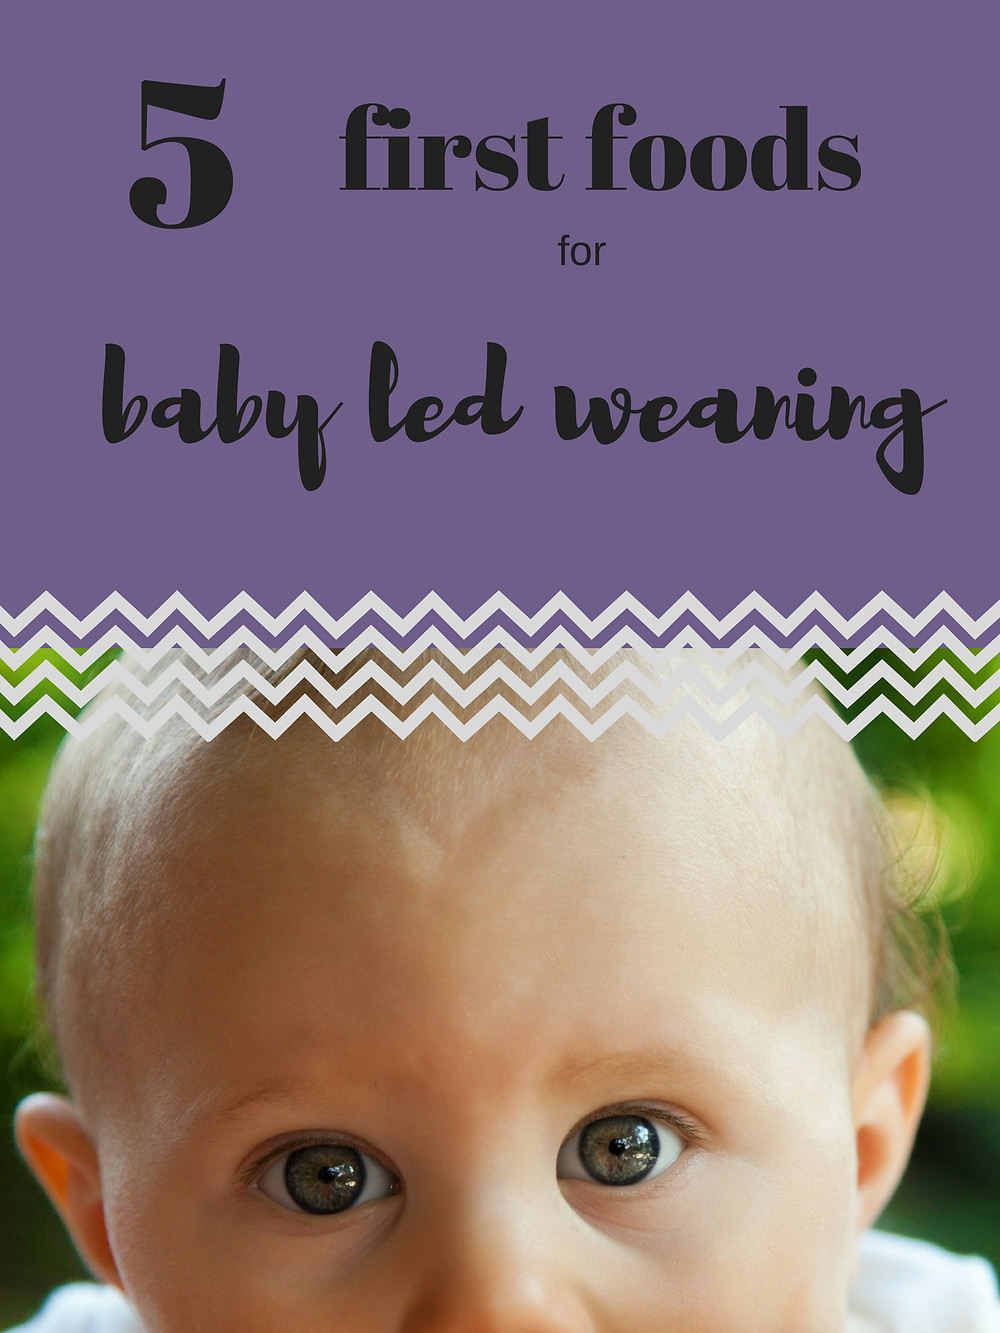 baby led weaning first food baby eating breastfeeding